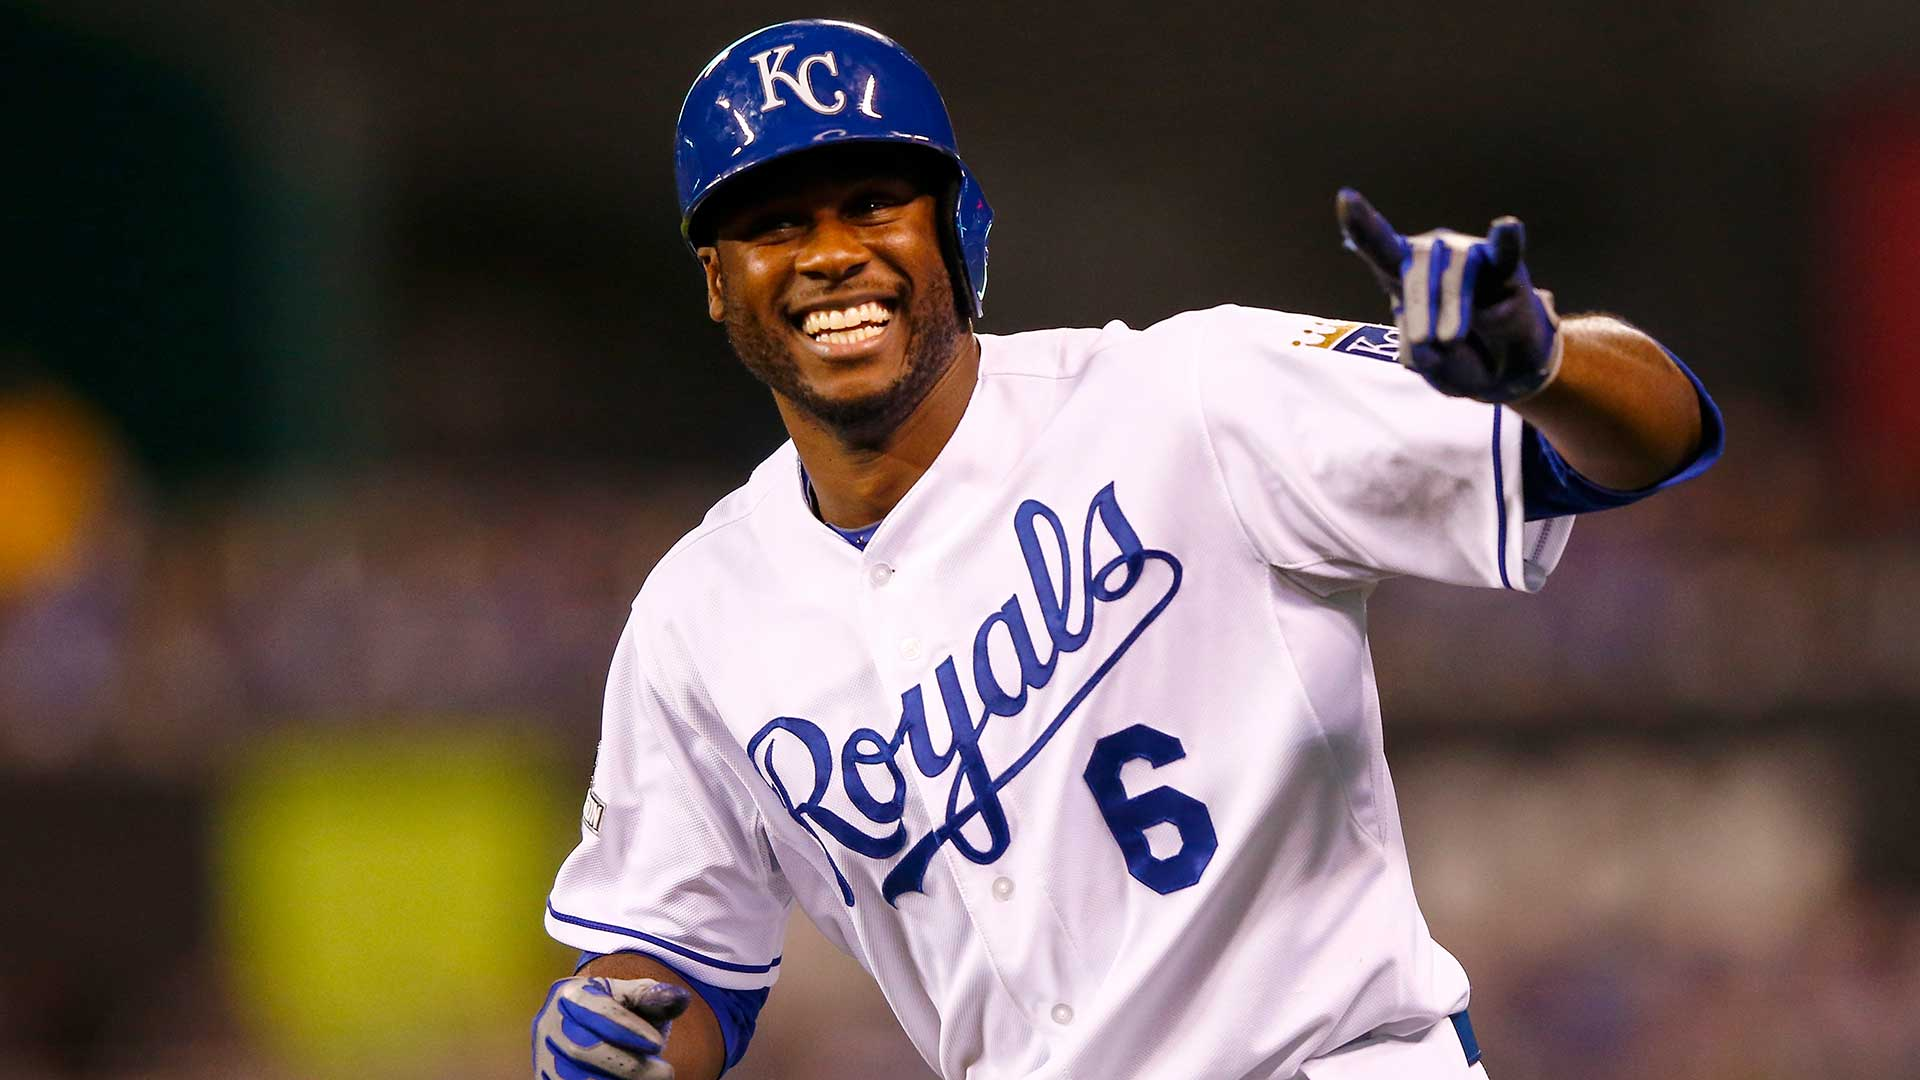 Royals' Lorenzo Cain hits a ground ball, keeps running, scores vs ...